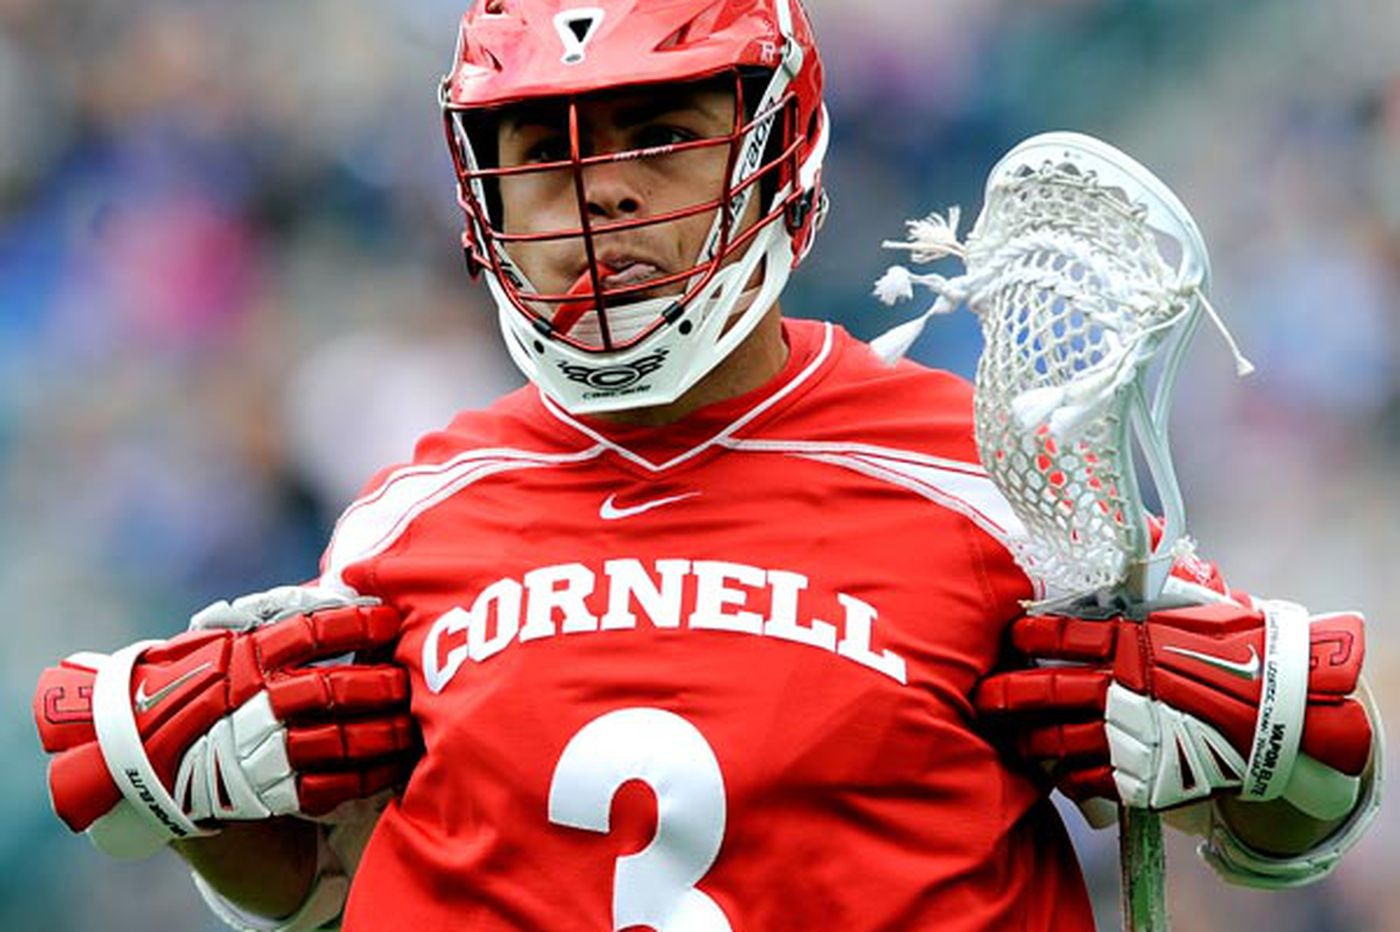 Pannell finishes historic career at Cornell